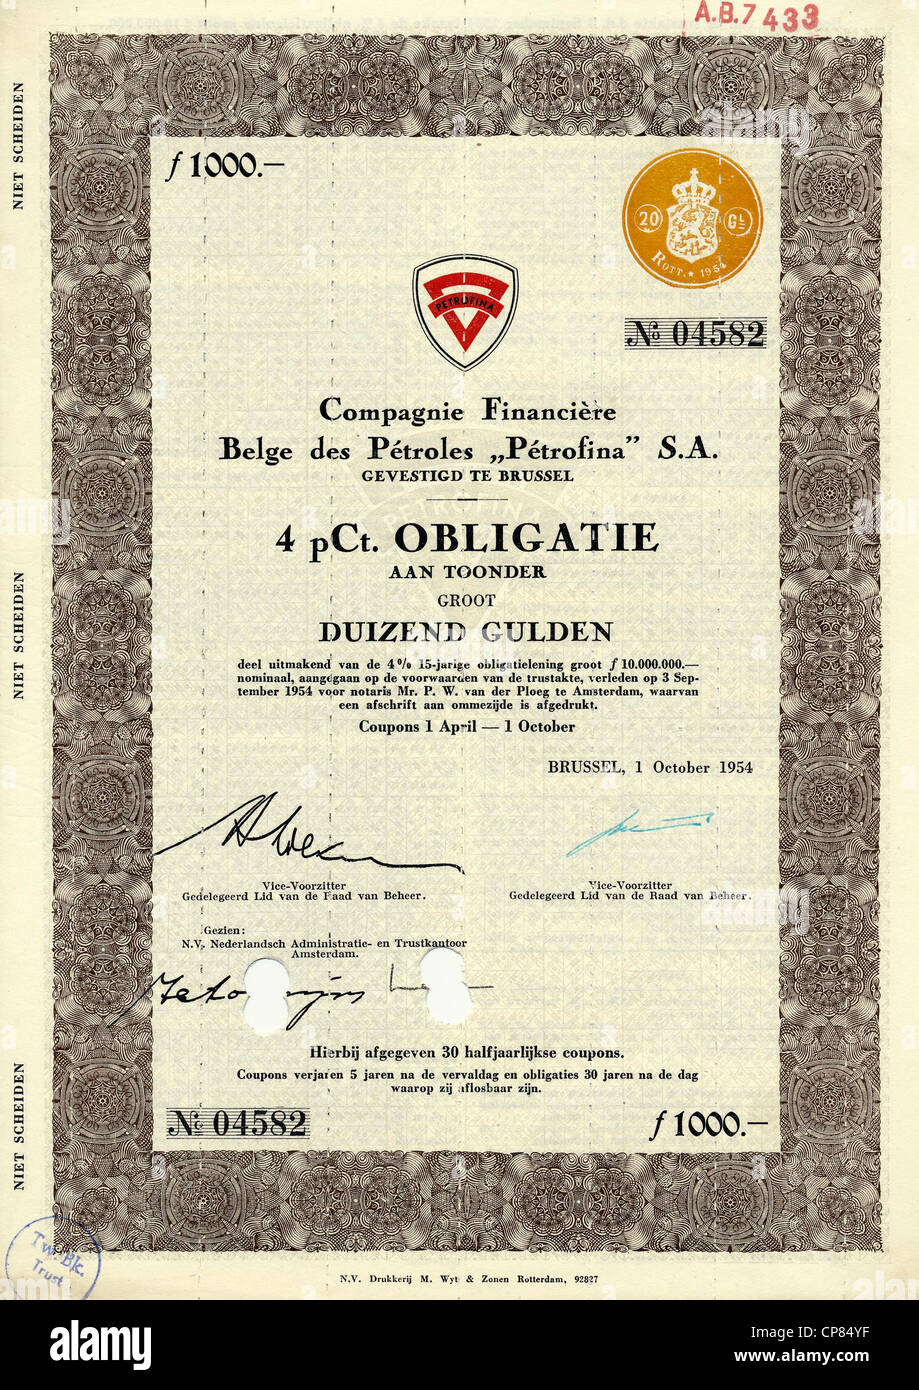 Historic share certificate from Belgium, 1000 Guilders, petroleum production, petrol stations, merged with Total - Stock Image